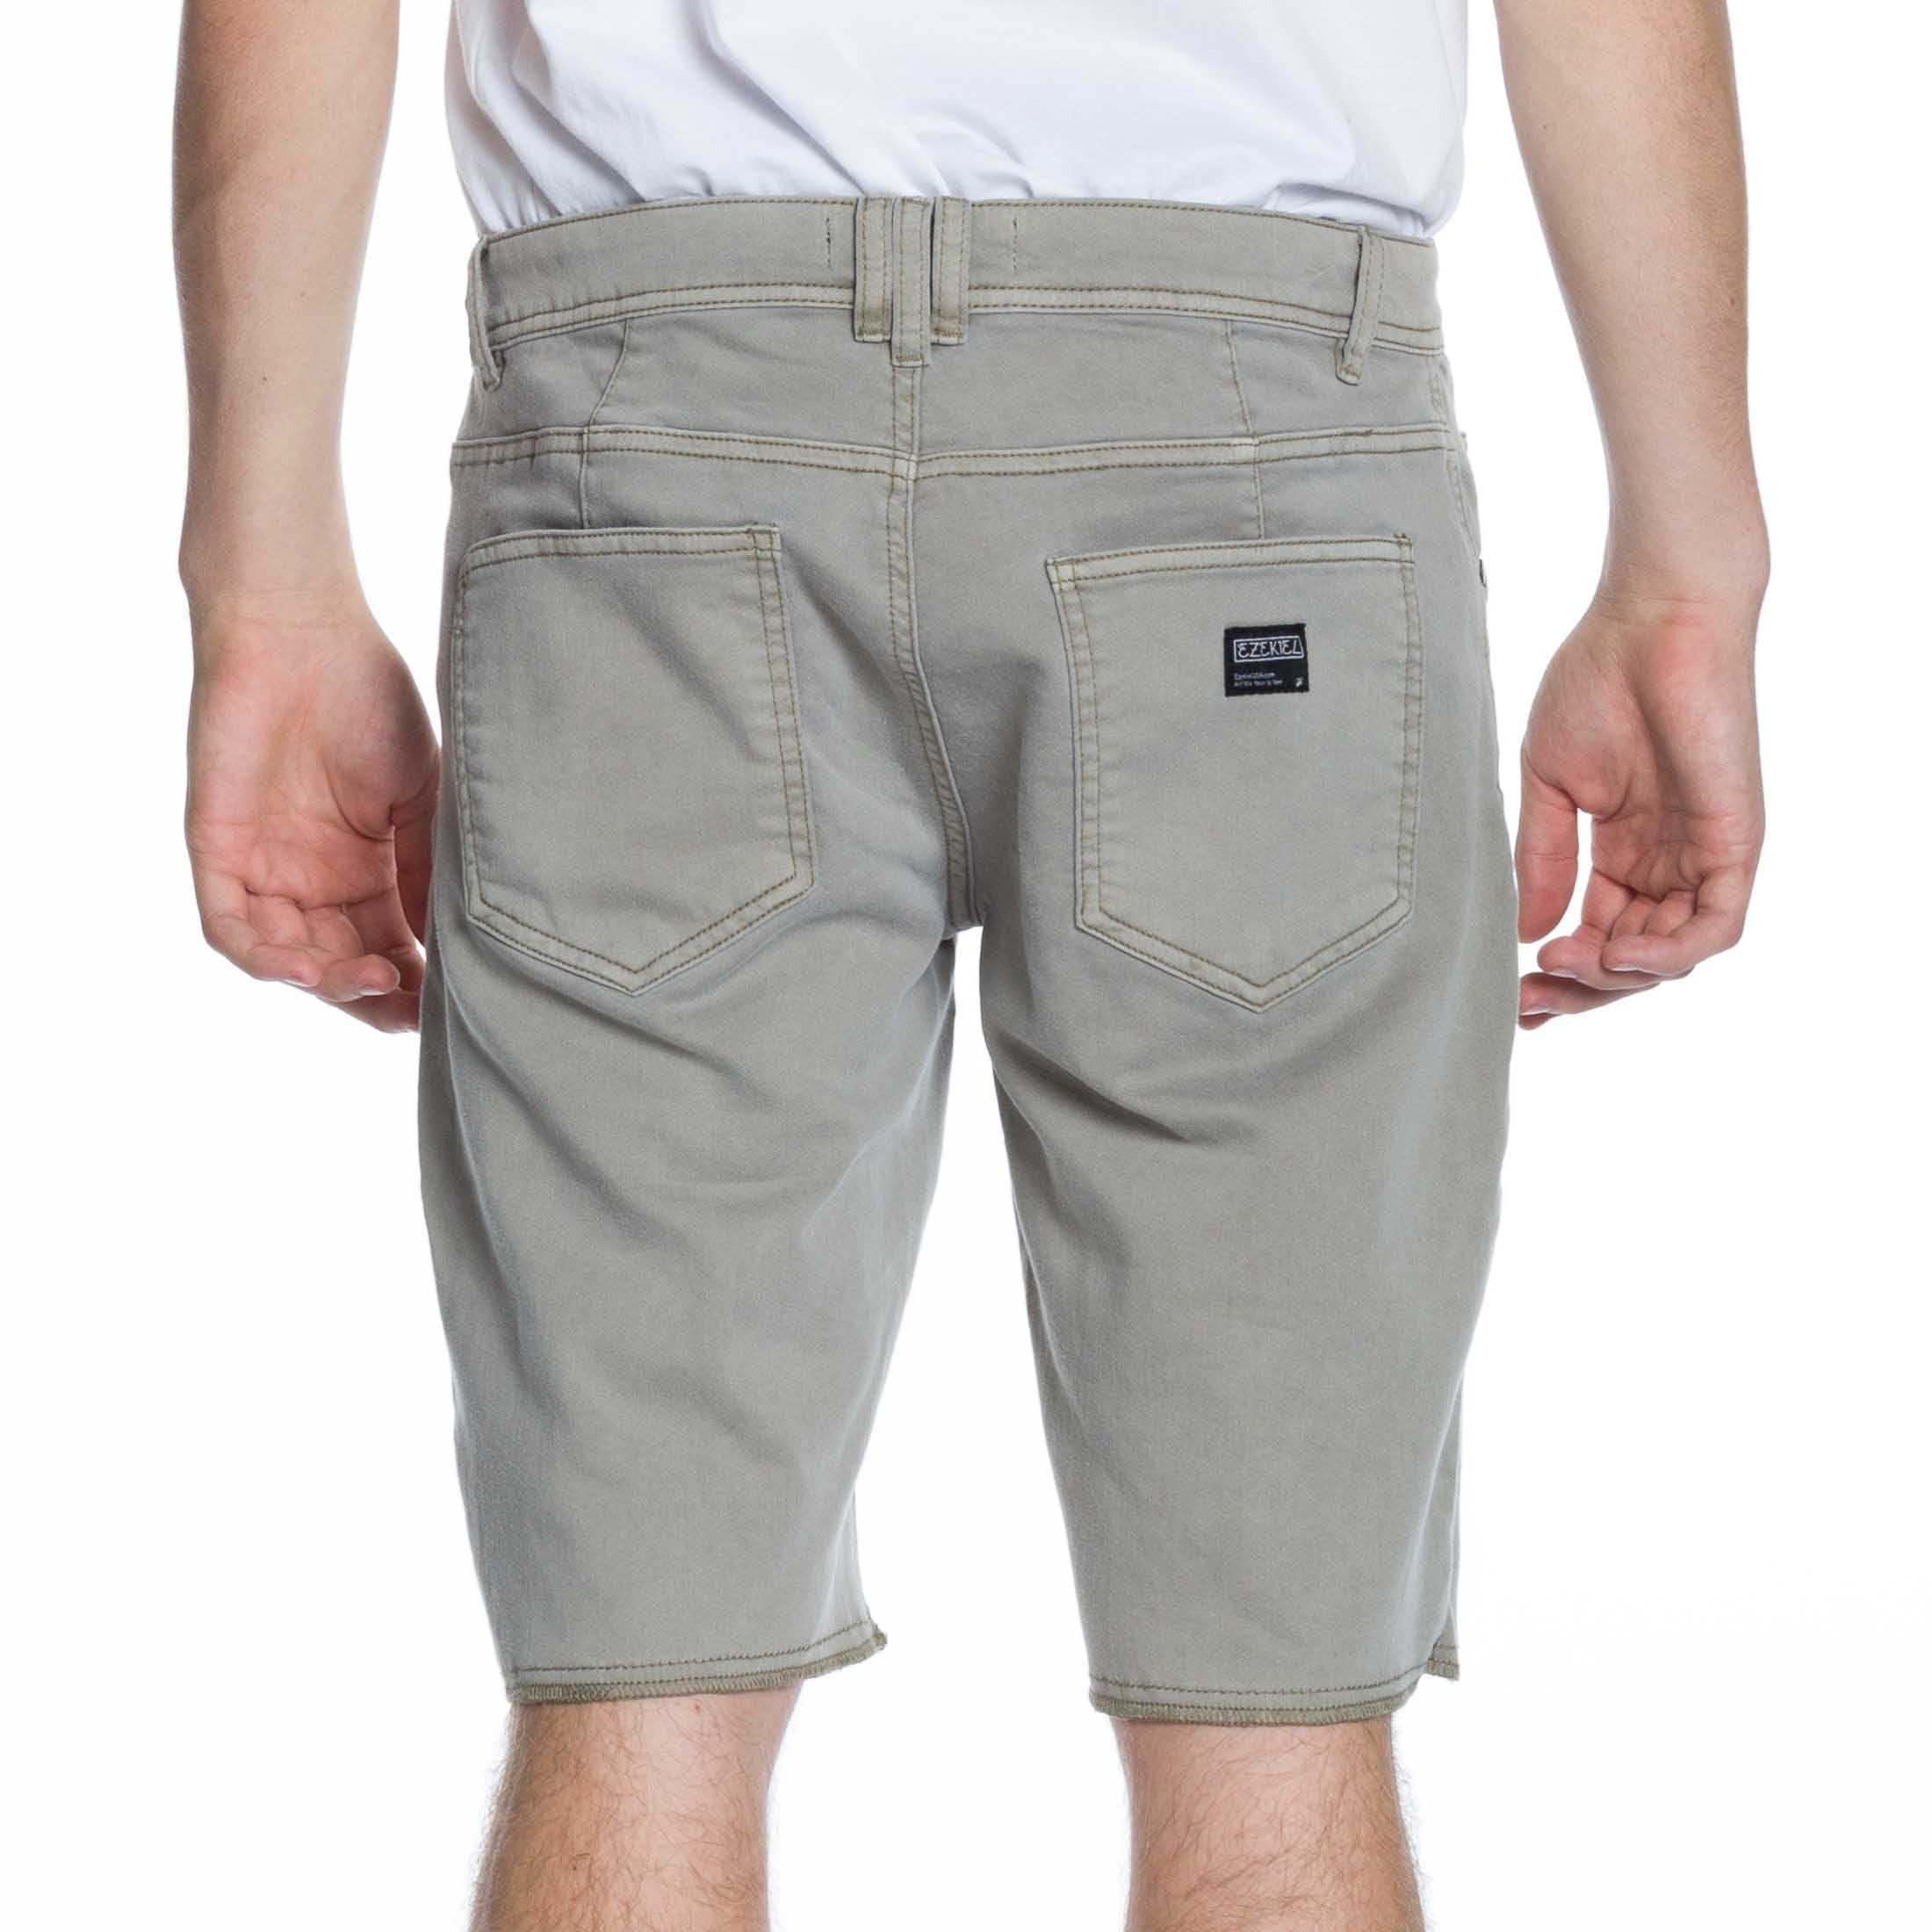 Now Denim Short - Sand - Ezekiel Clothing